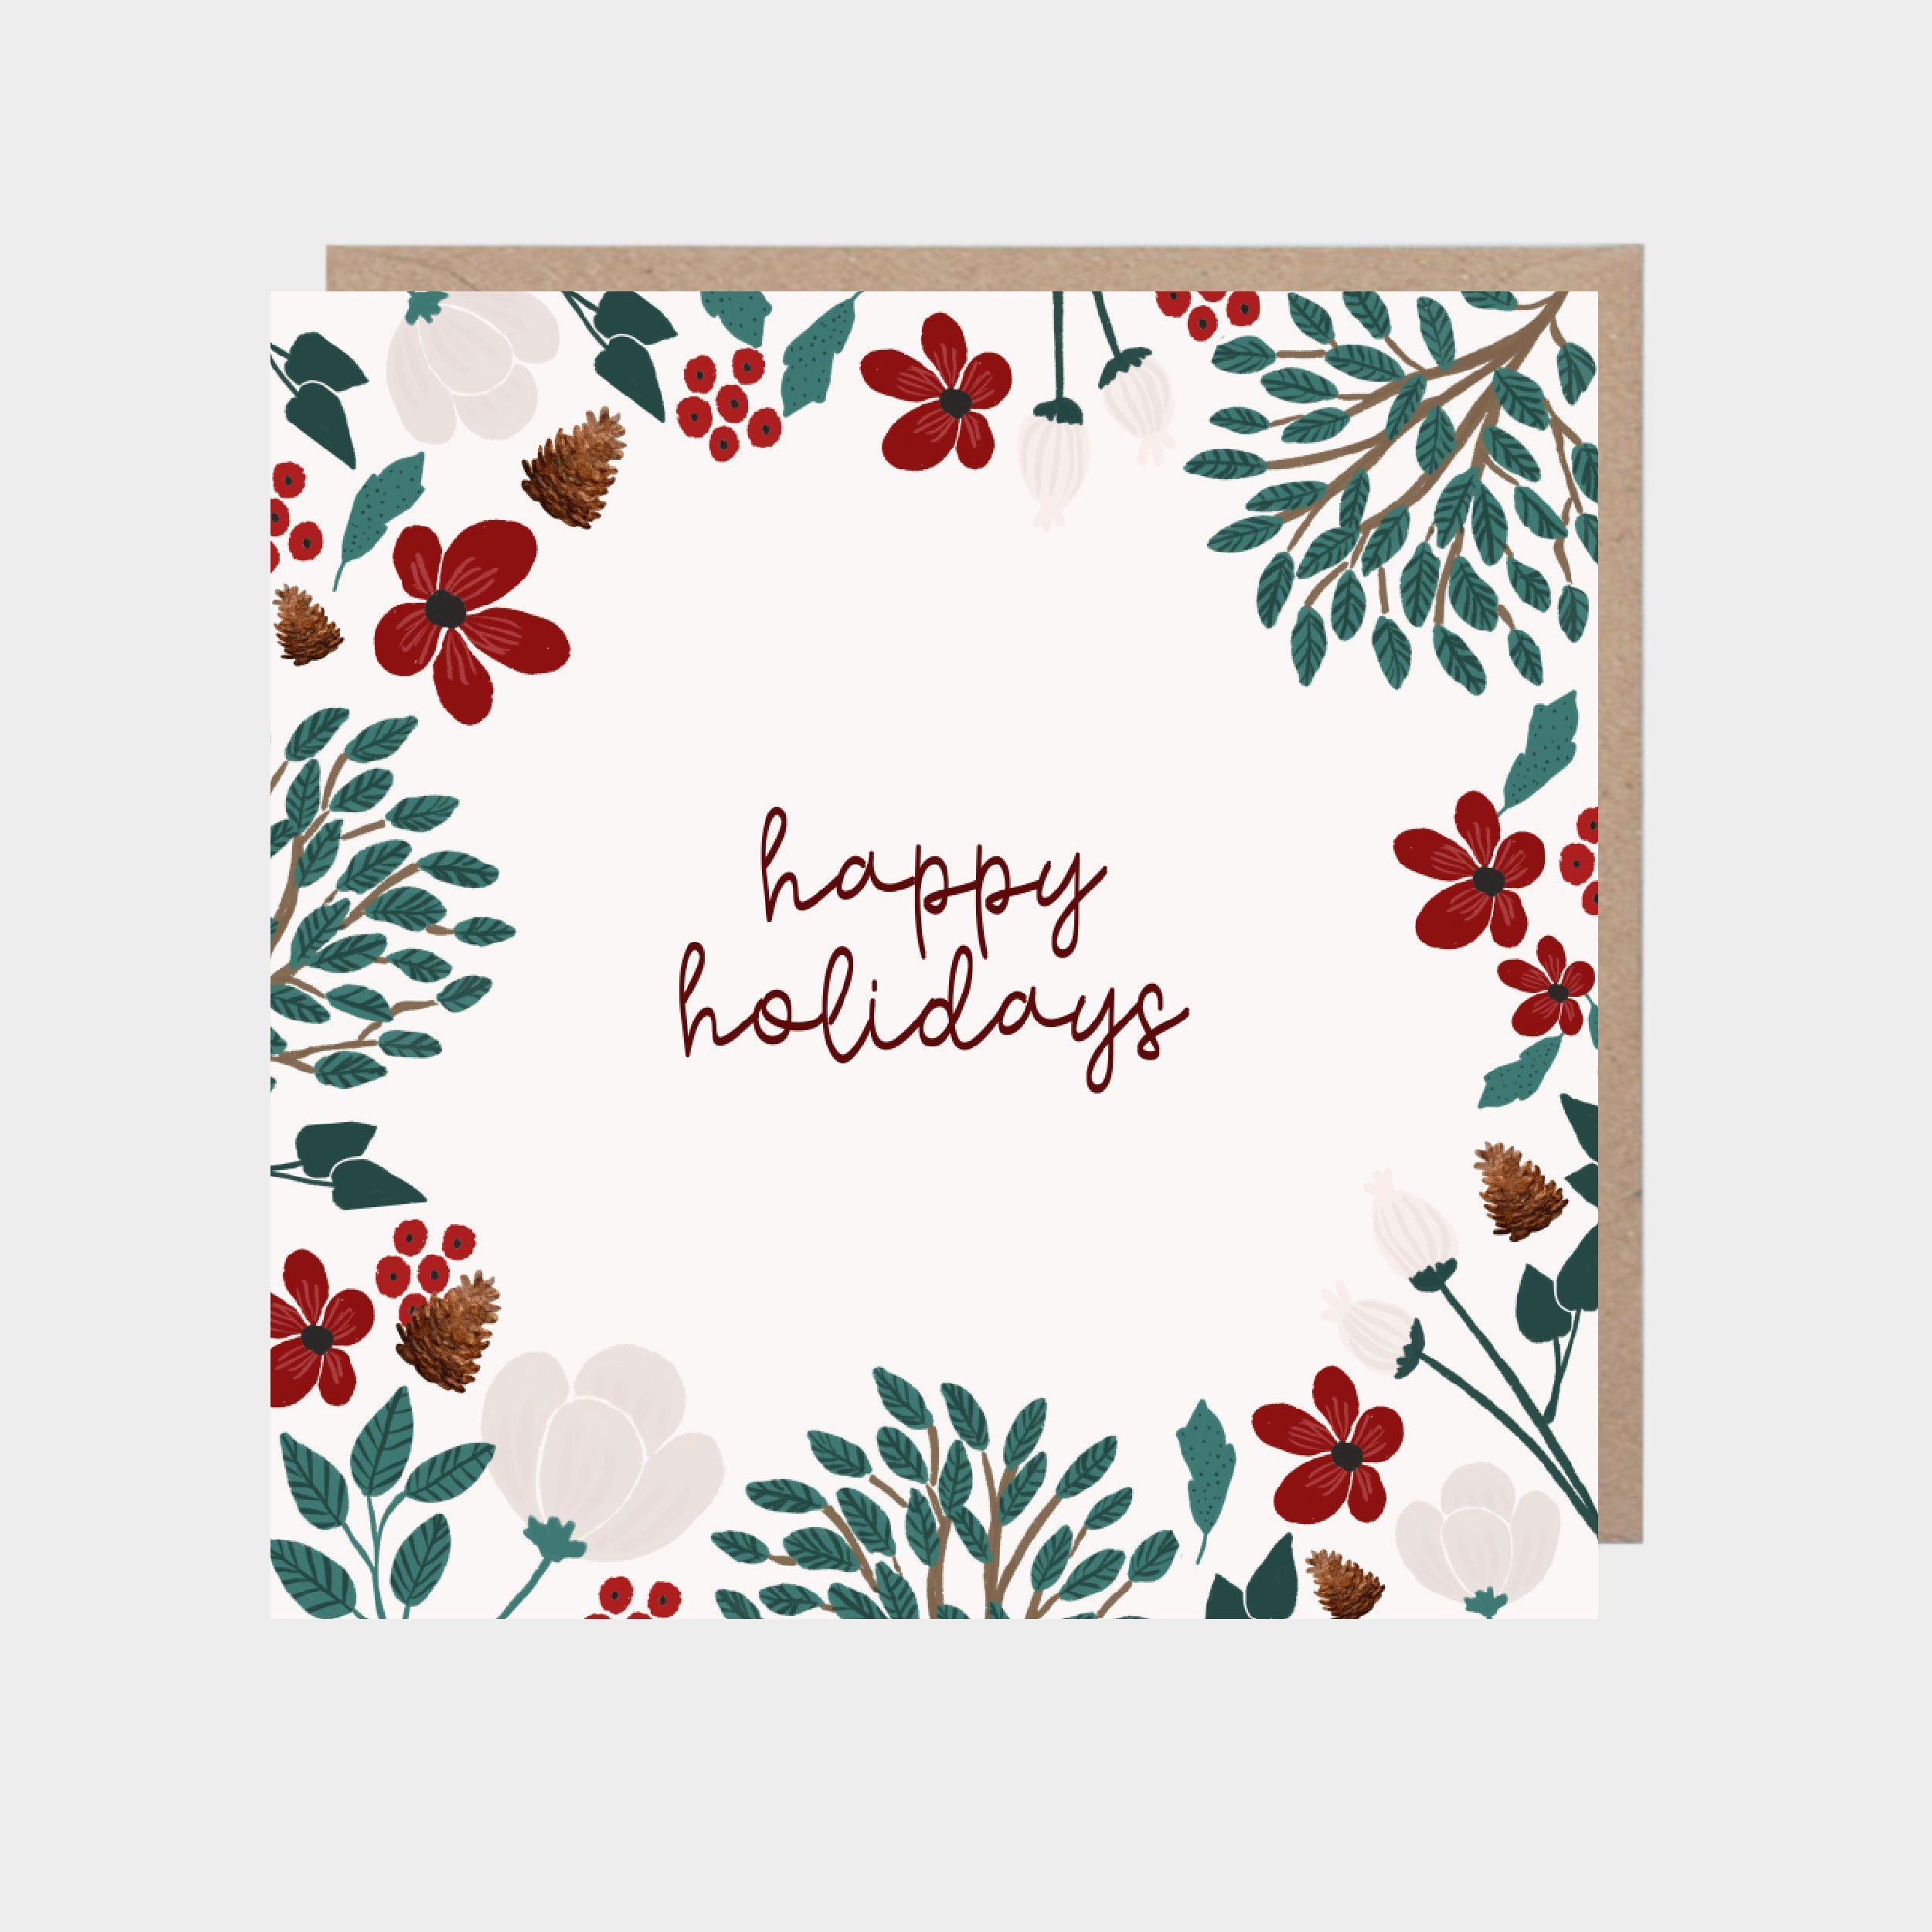 Square white card with a border of winter foliage and flowers, with a brown kraft envelope